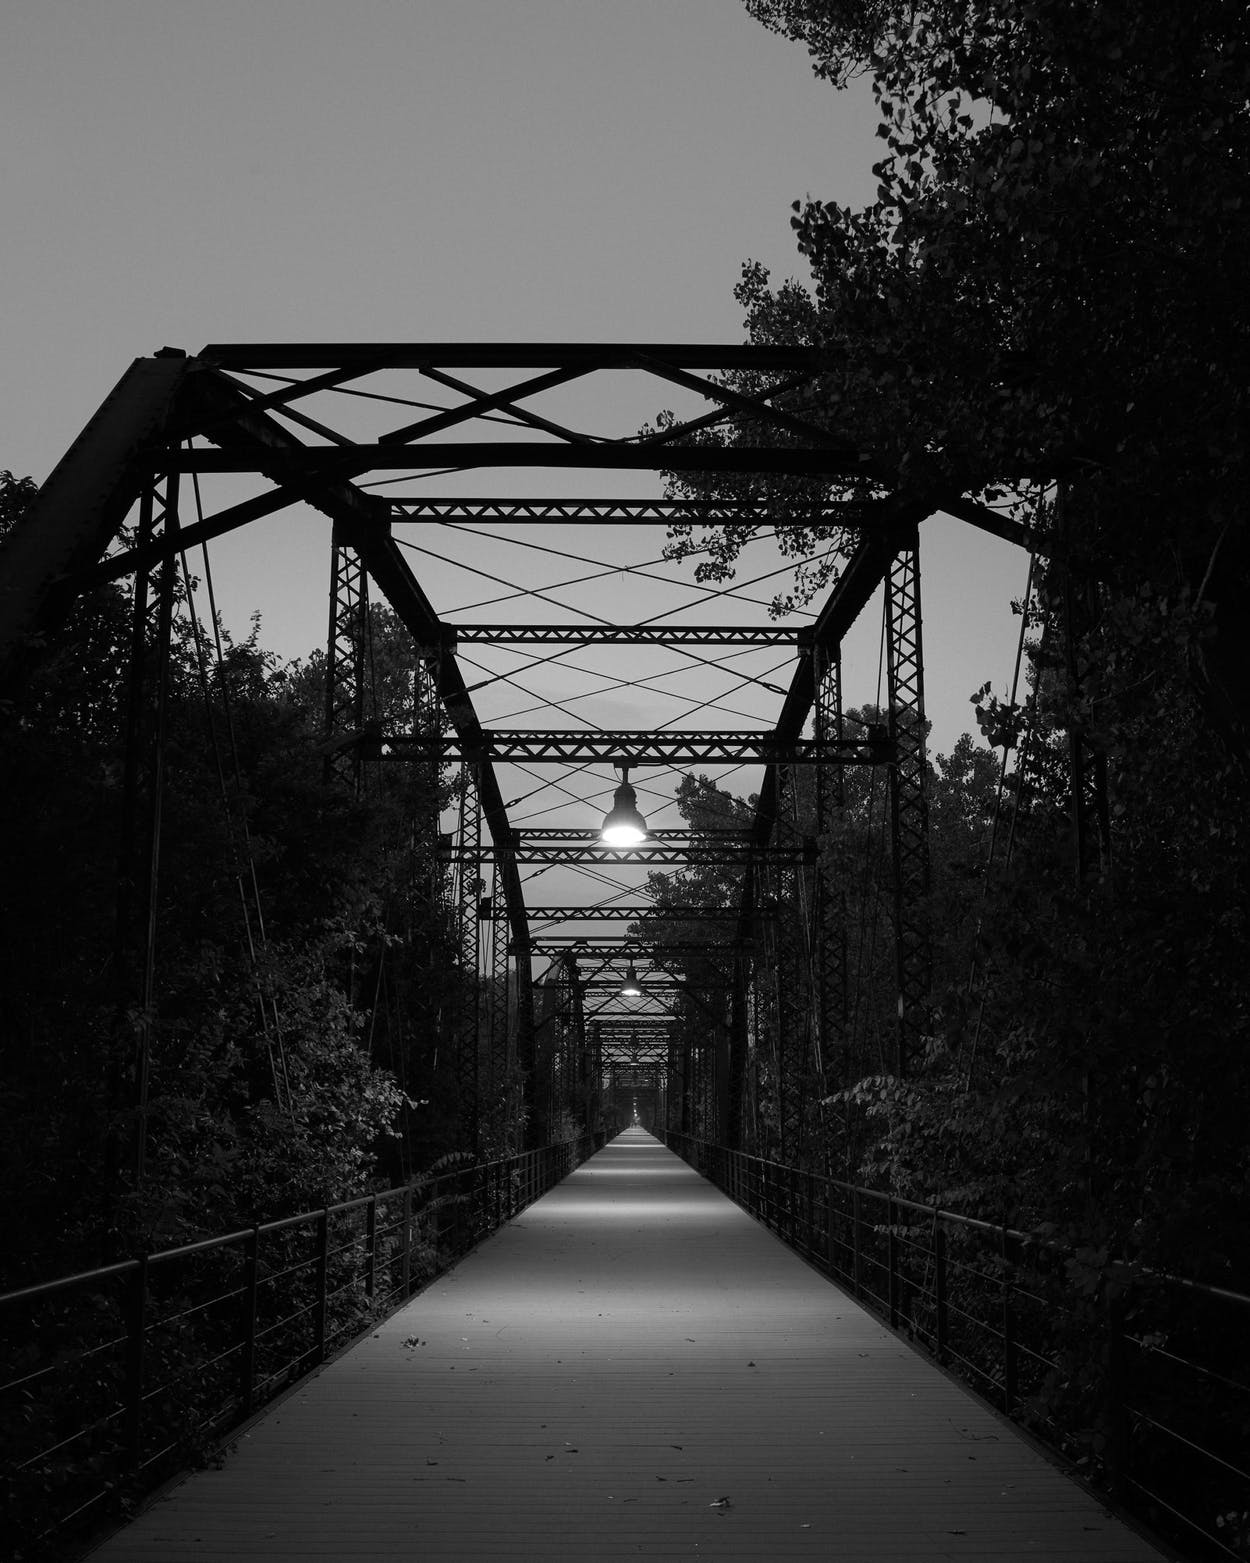 The Walking Bridge, just outside of Canadian and one of the places where Tom was last seen.